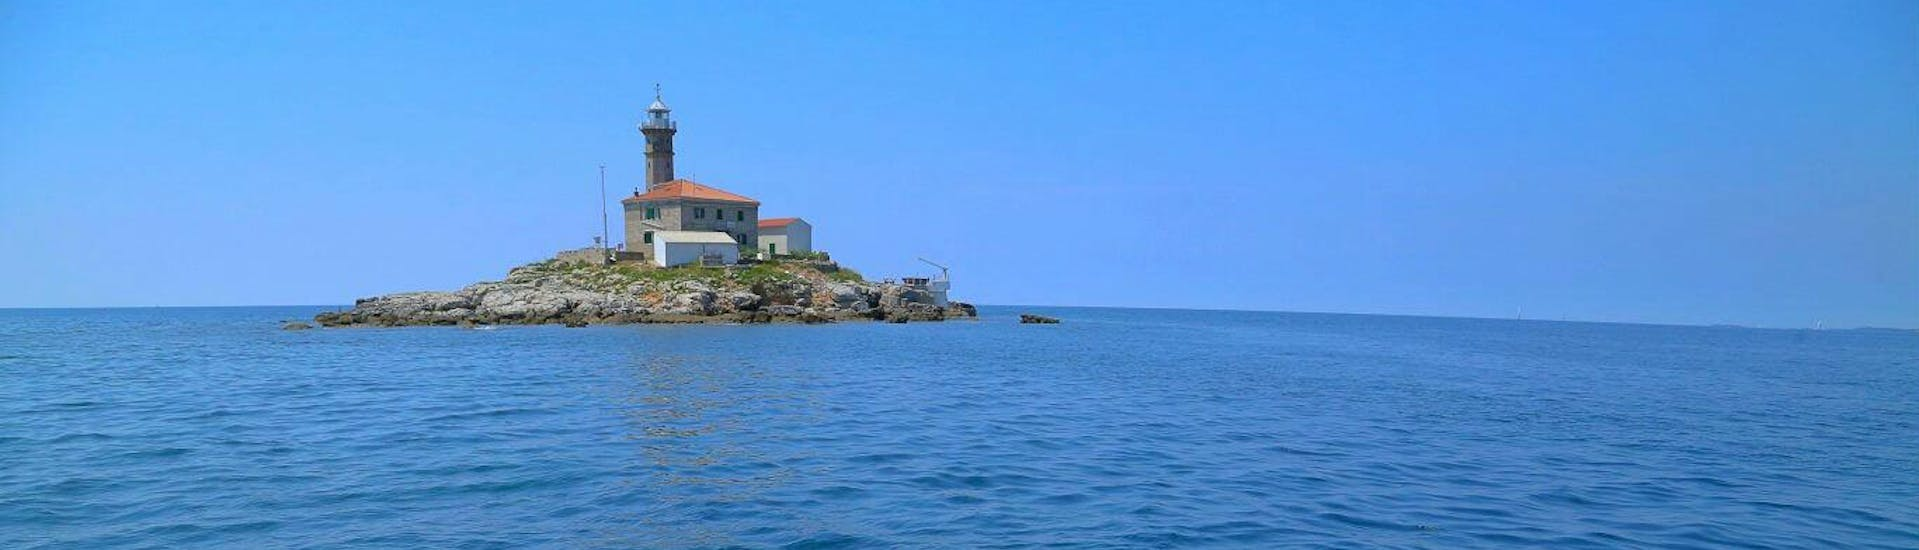 Scuba Diving - Guided Boat Dives to Islands close to Rovinj